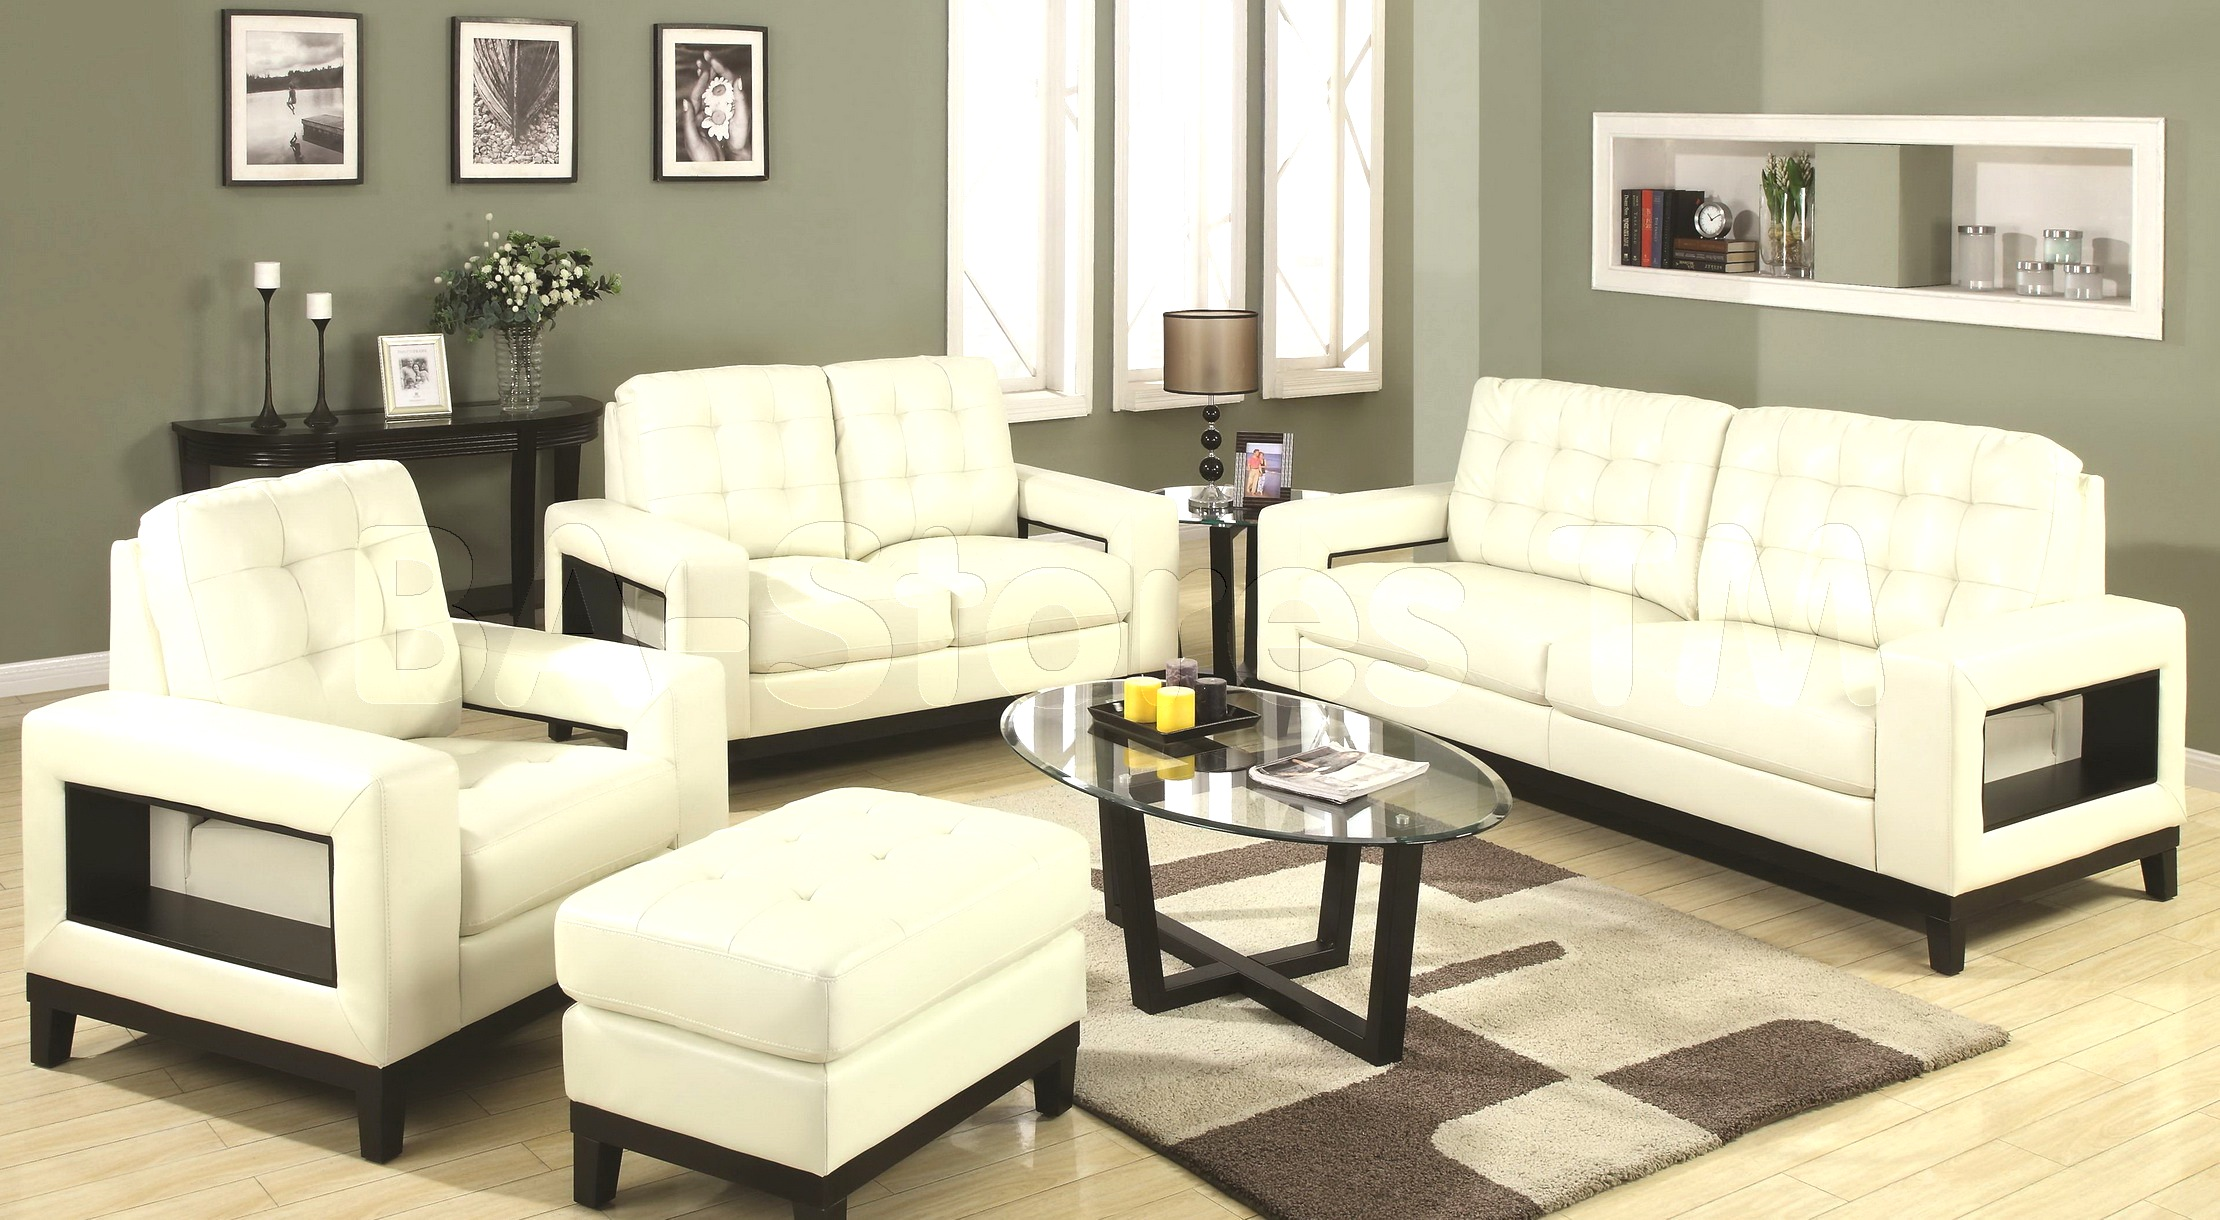 White living room furniture sets roselawnlutheran for I living furniture